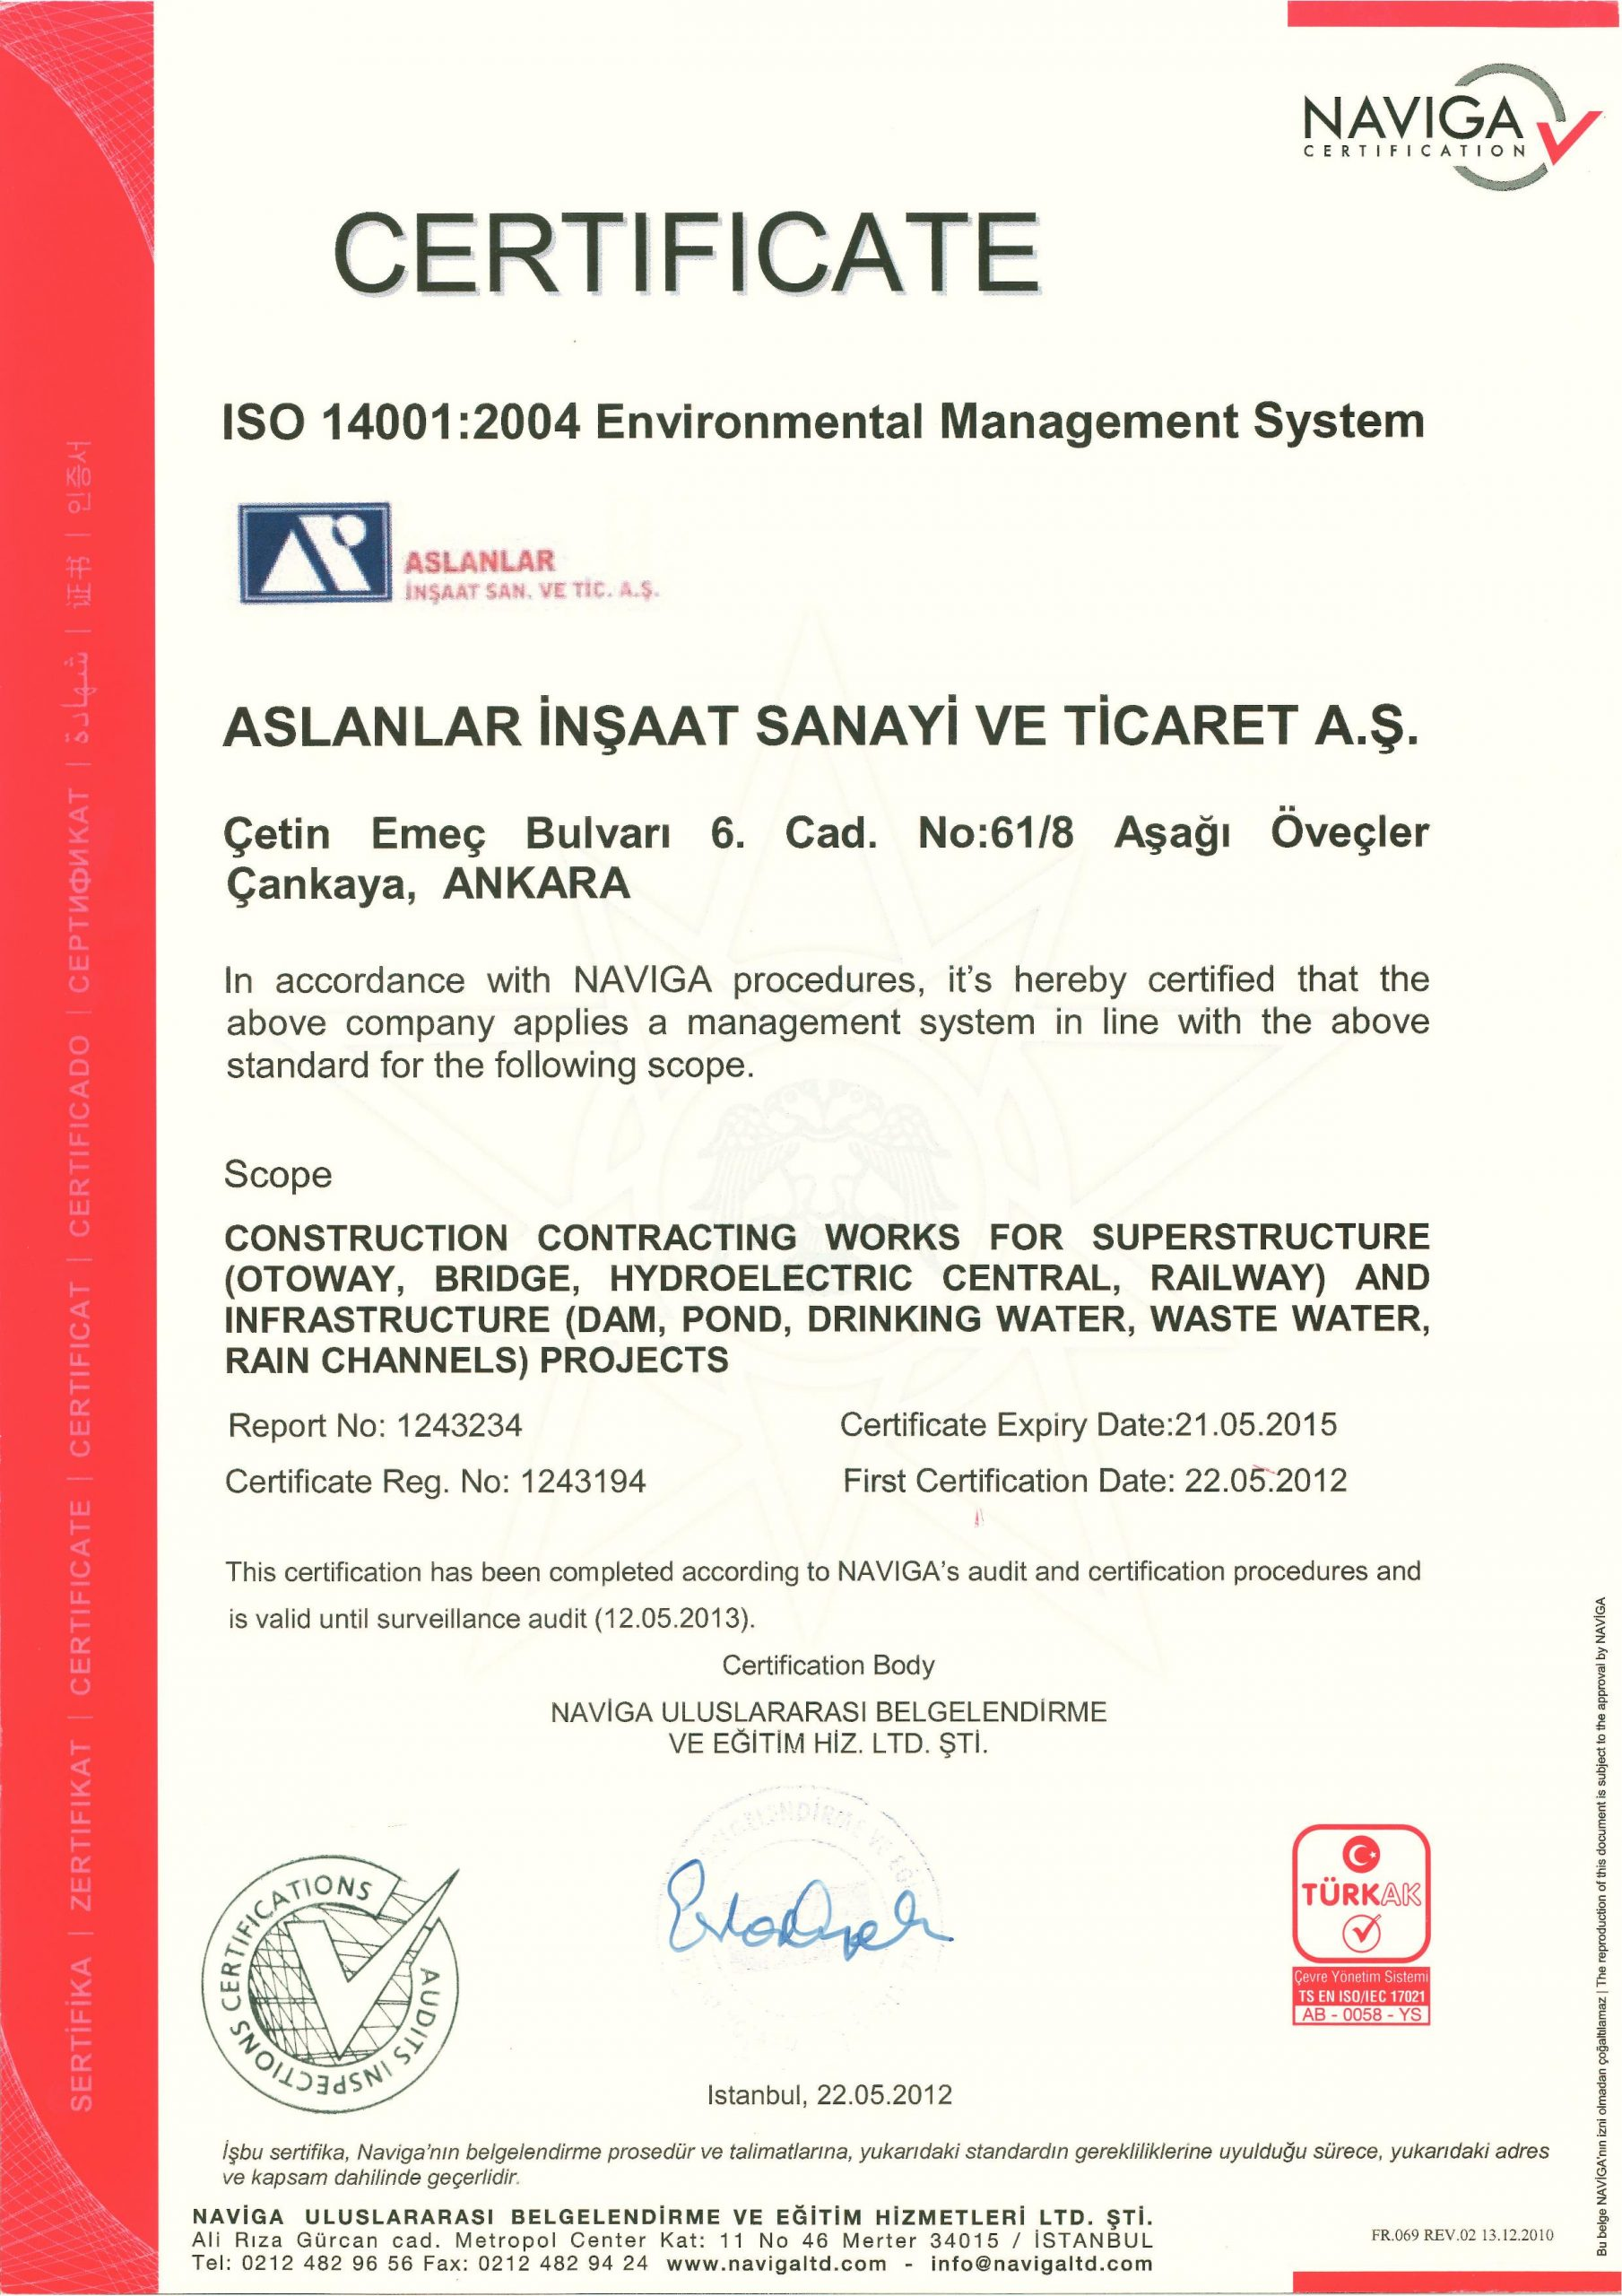 İSO 1401:2004 Environmetal Management System